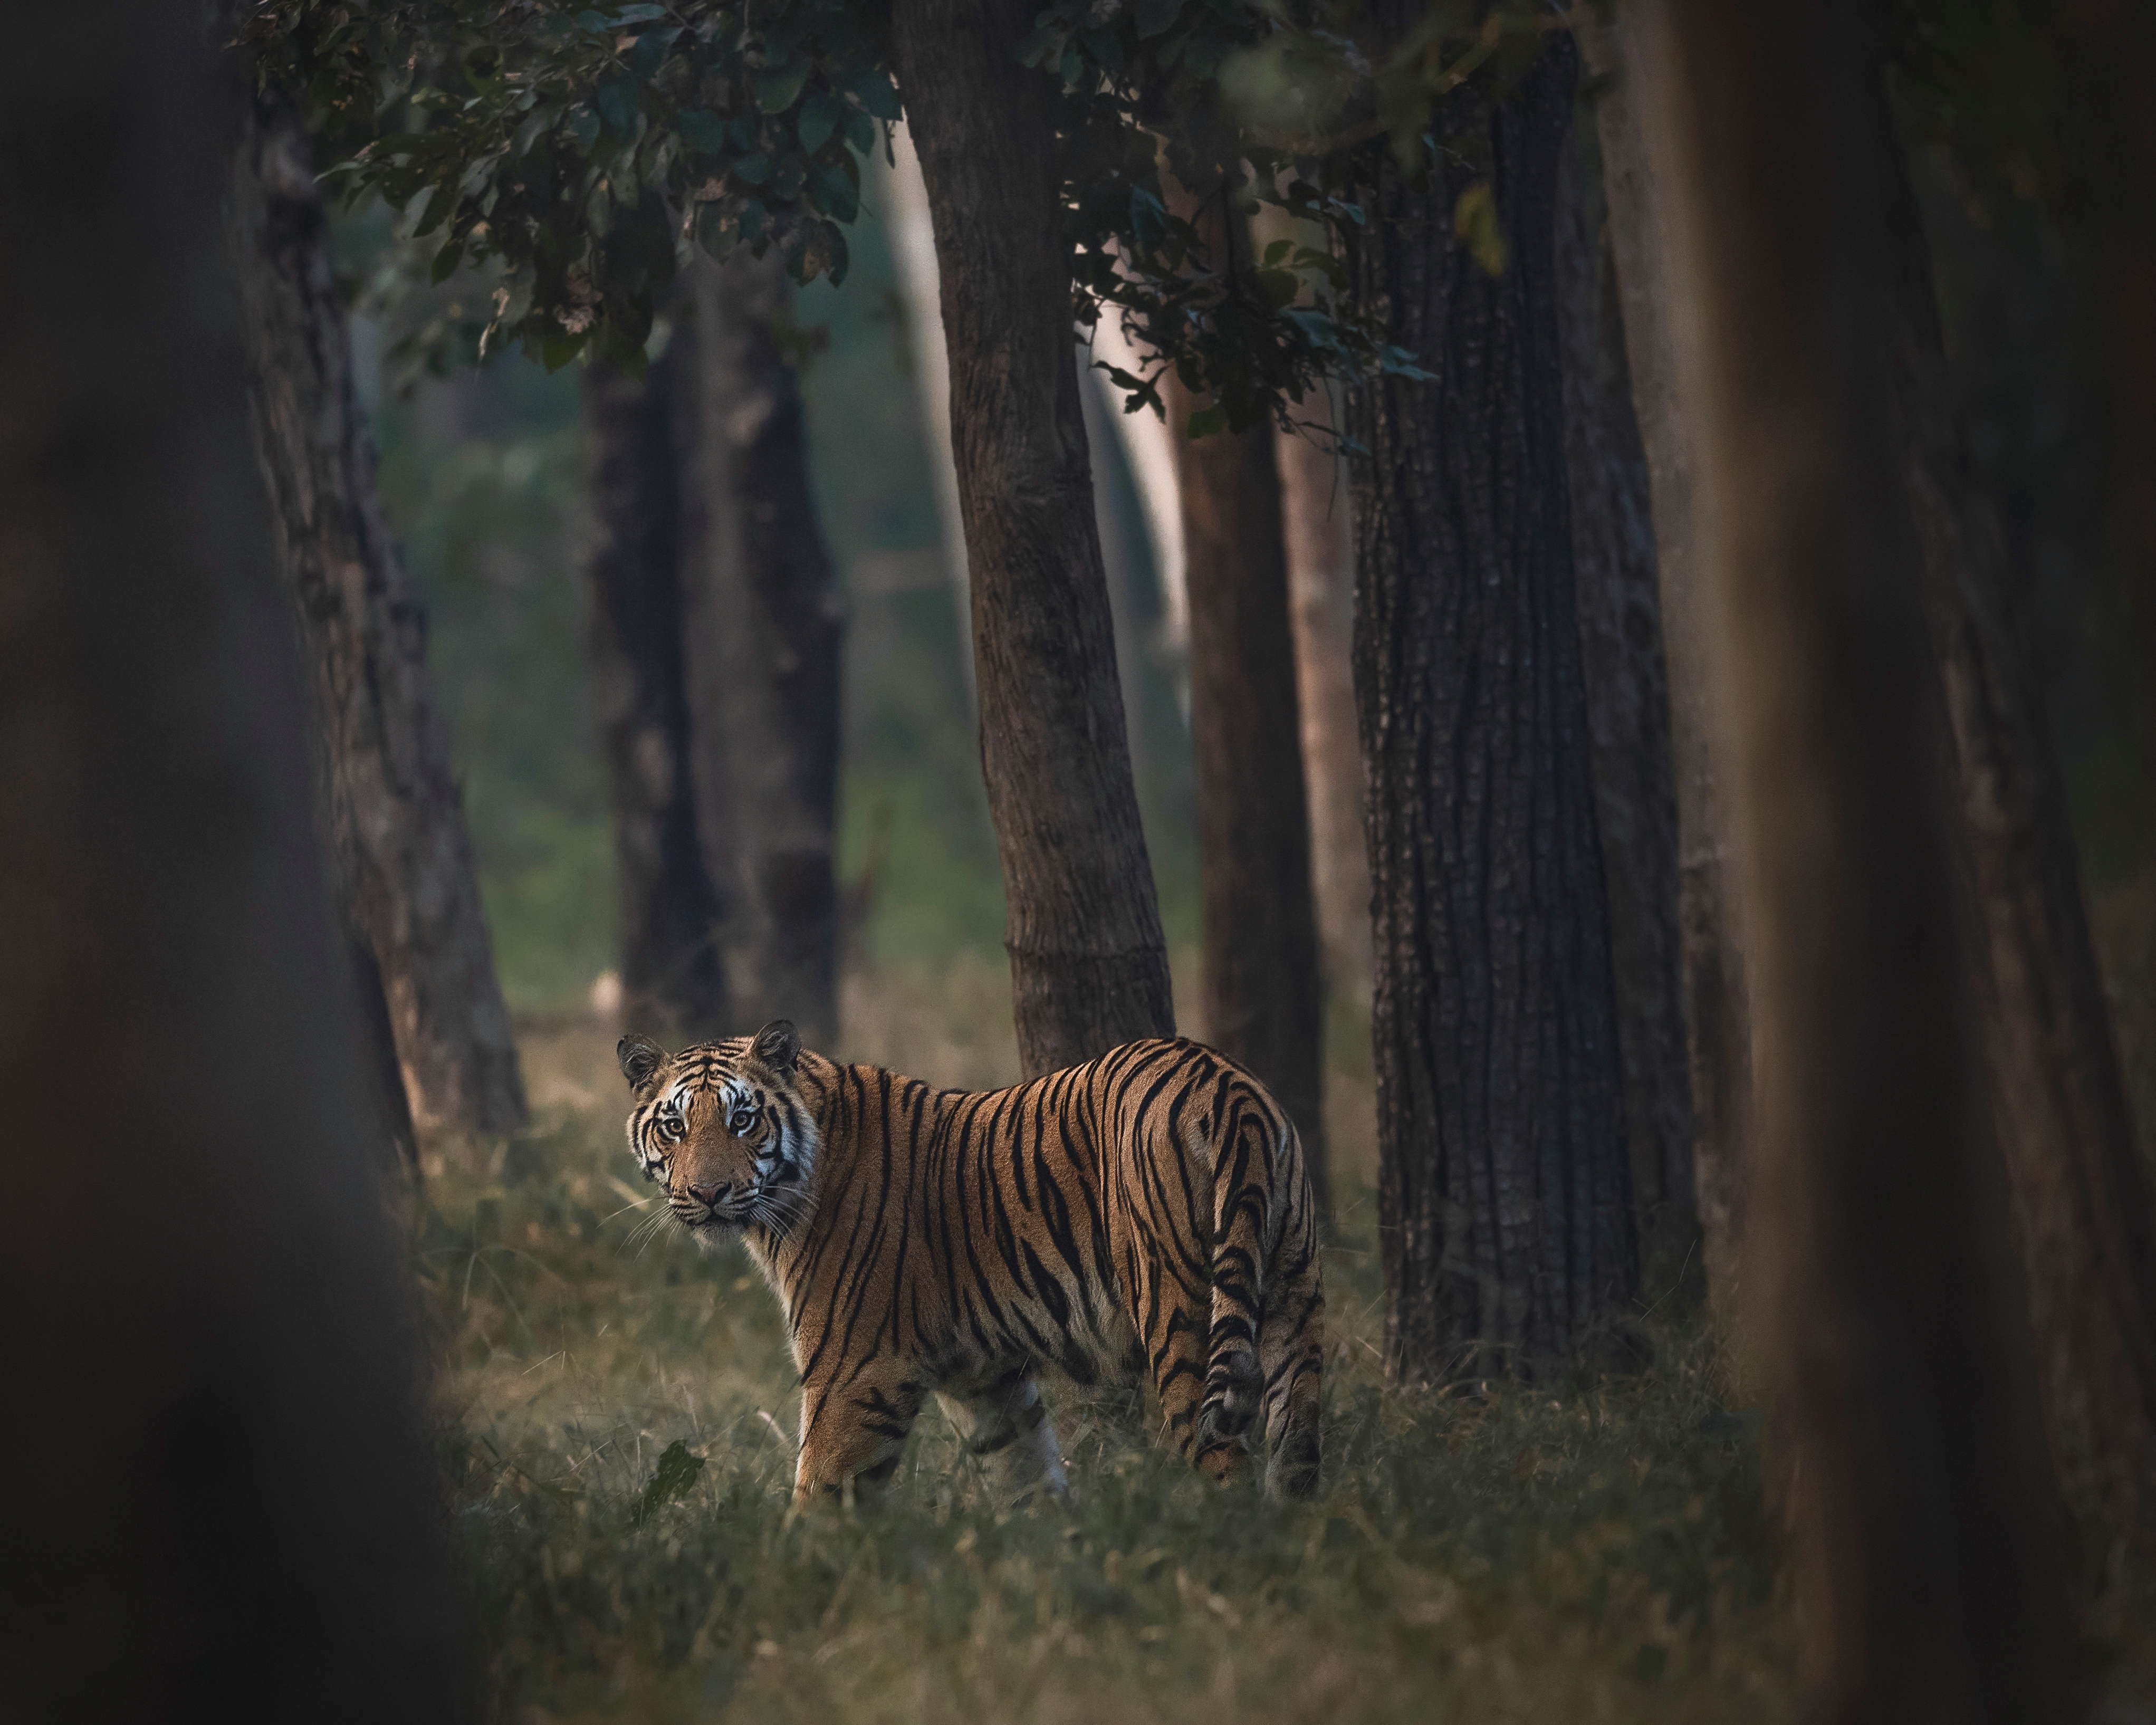 A tiger staring through the trees